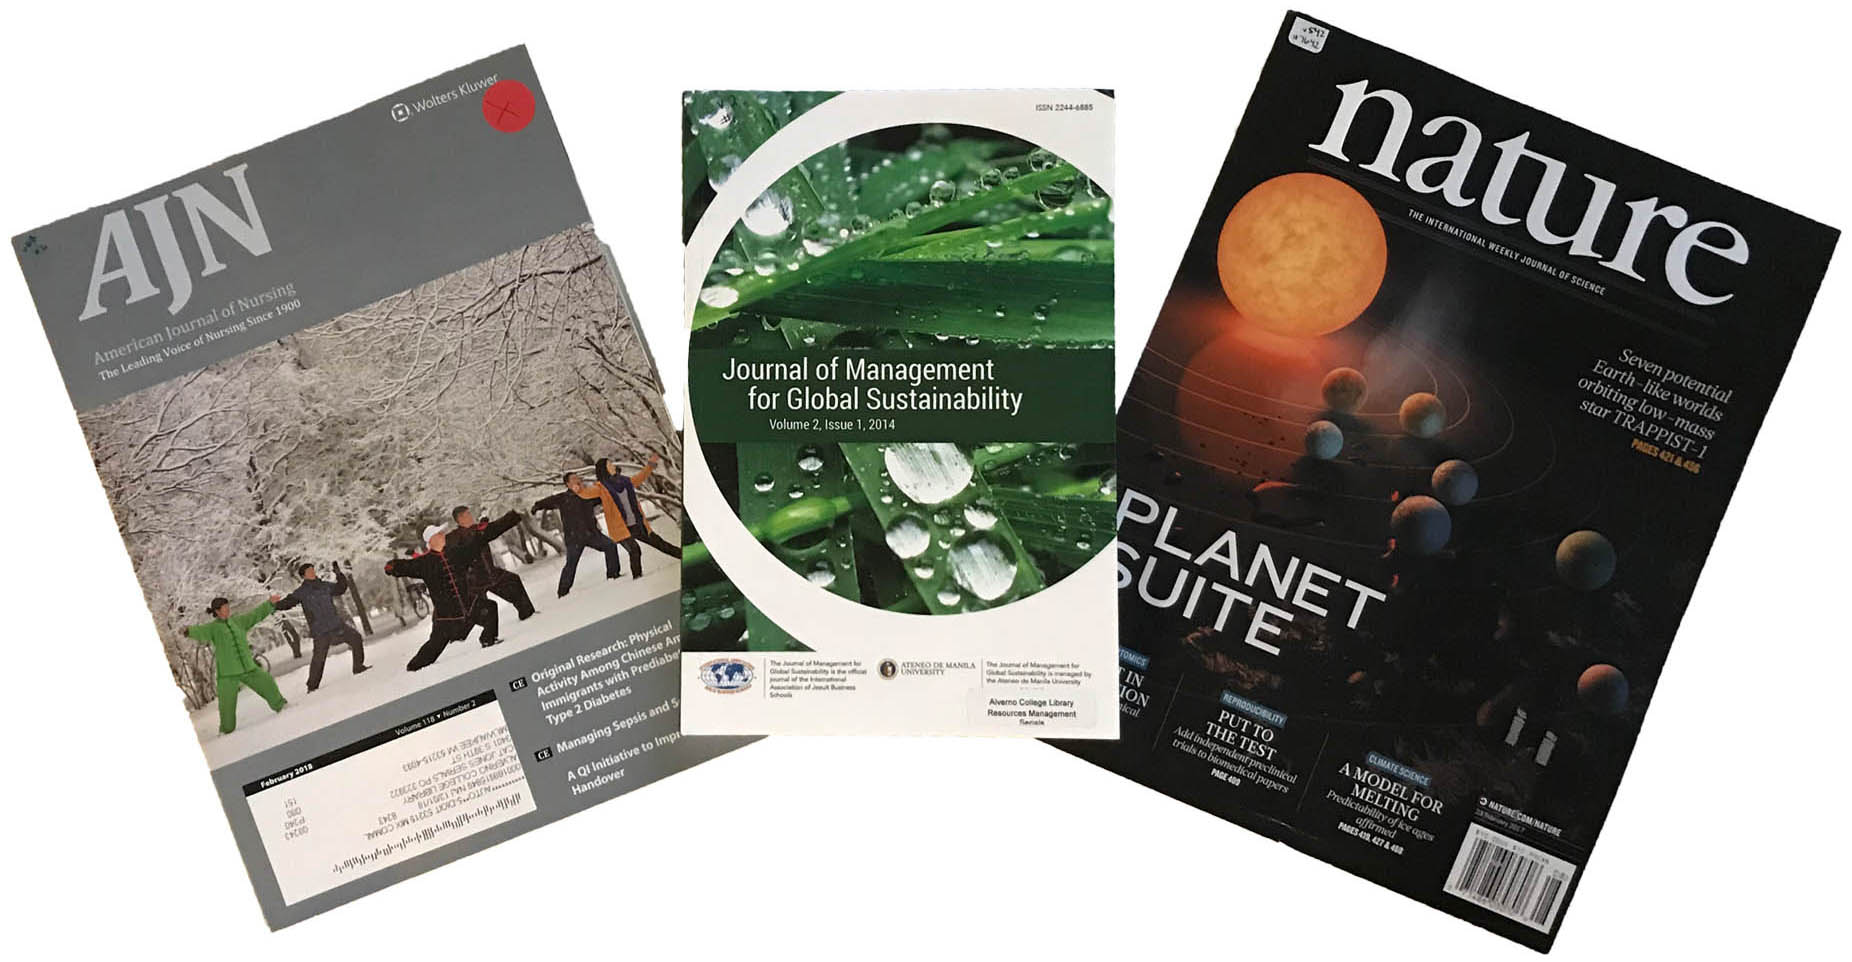 Journal covers image